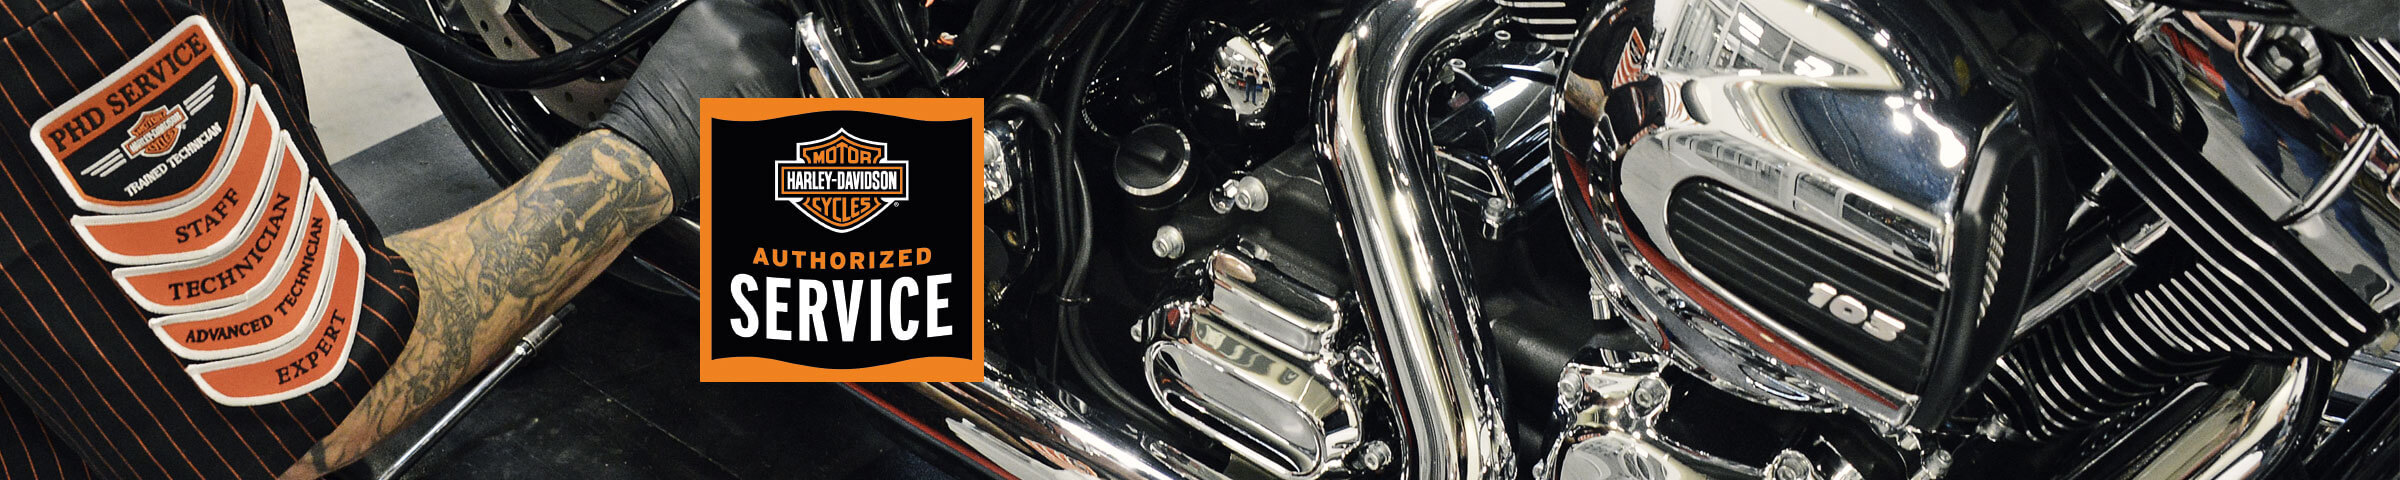 Harley Davidson Authorized Service